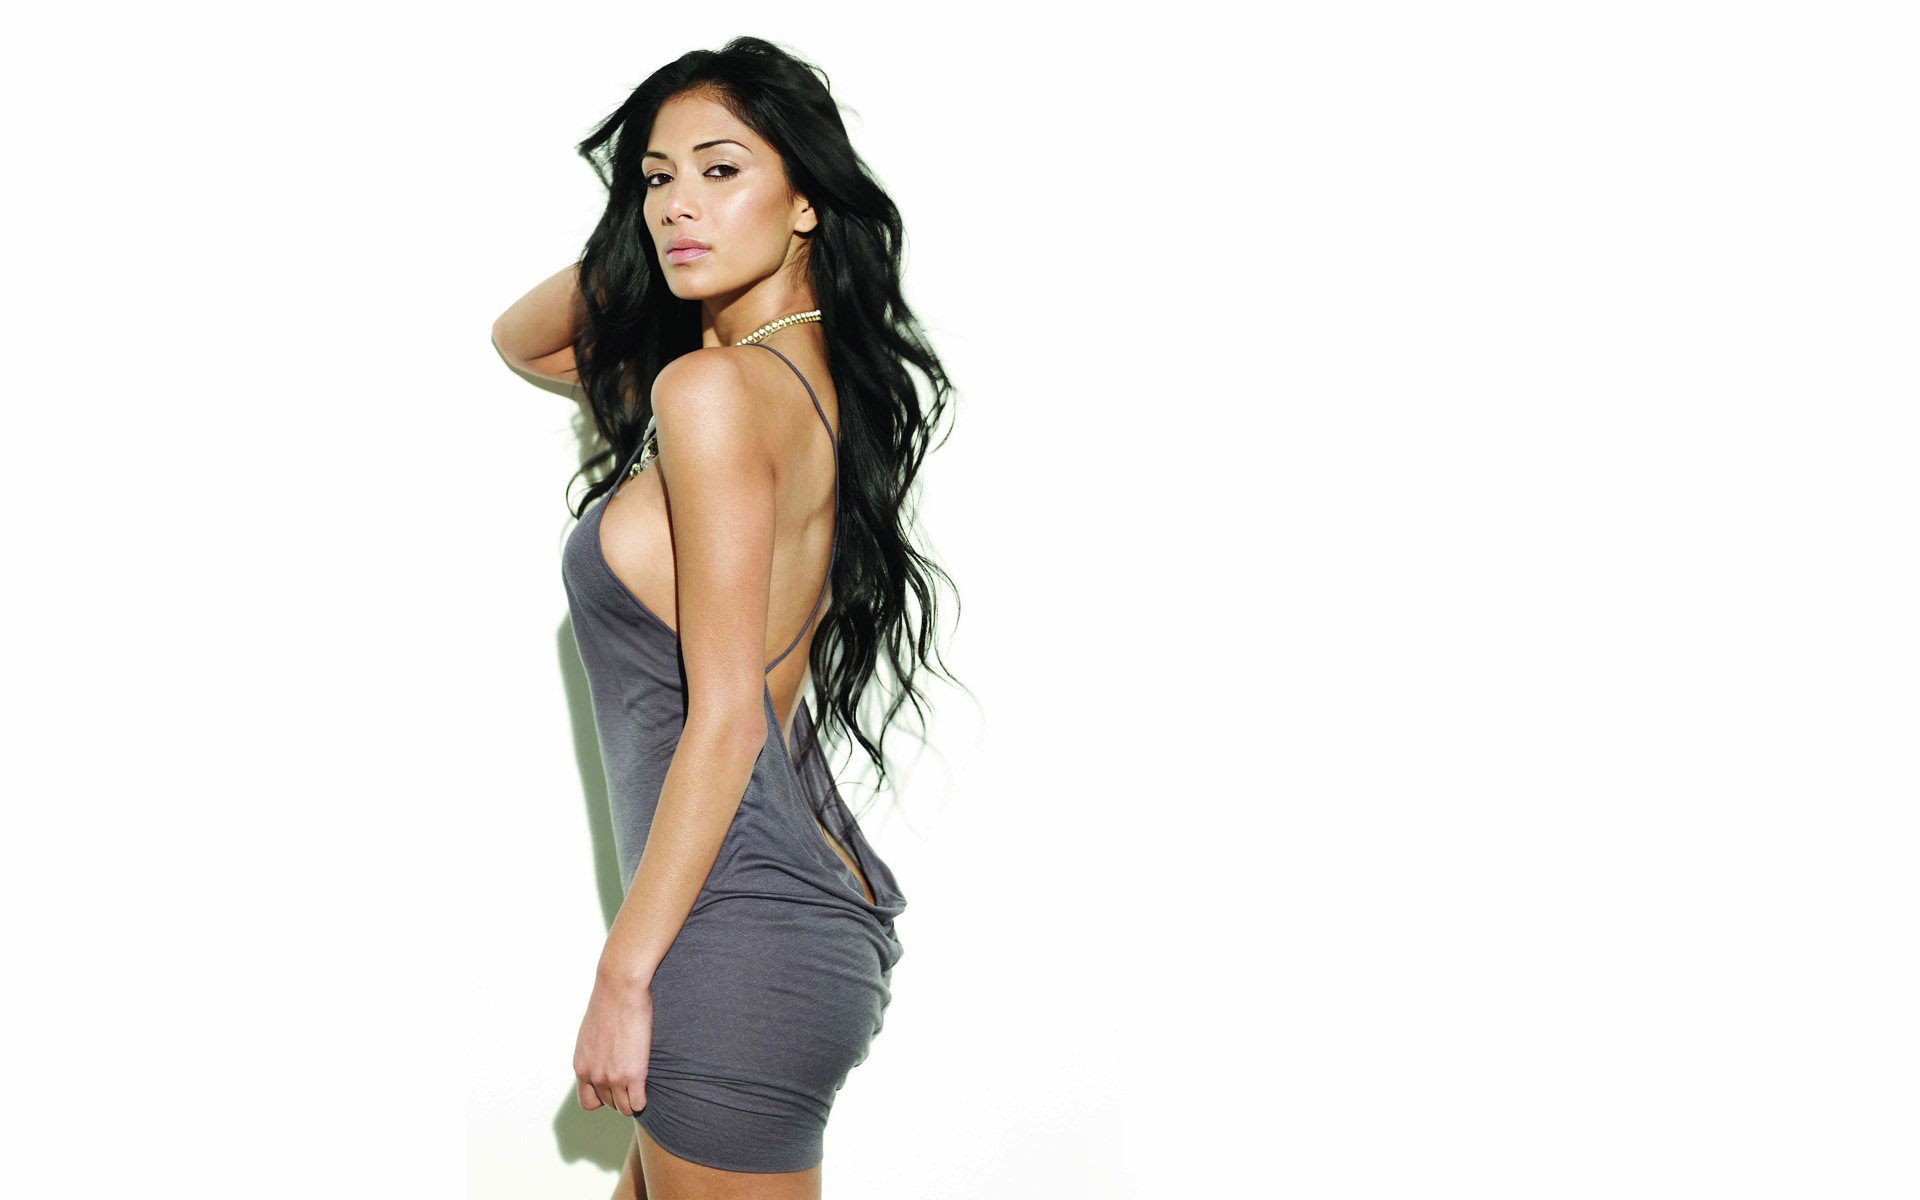 HD Wallpapers Nicole Scherzinger Widescreen